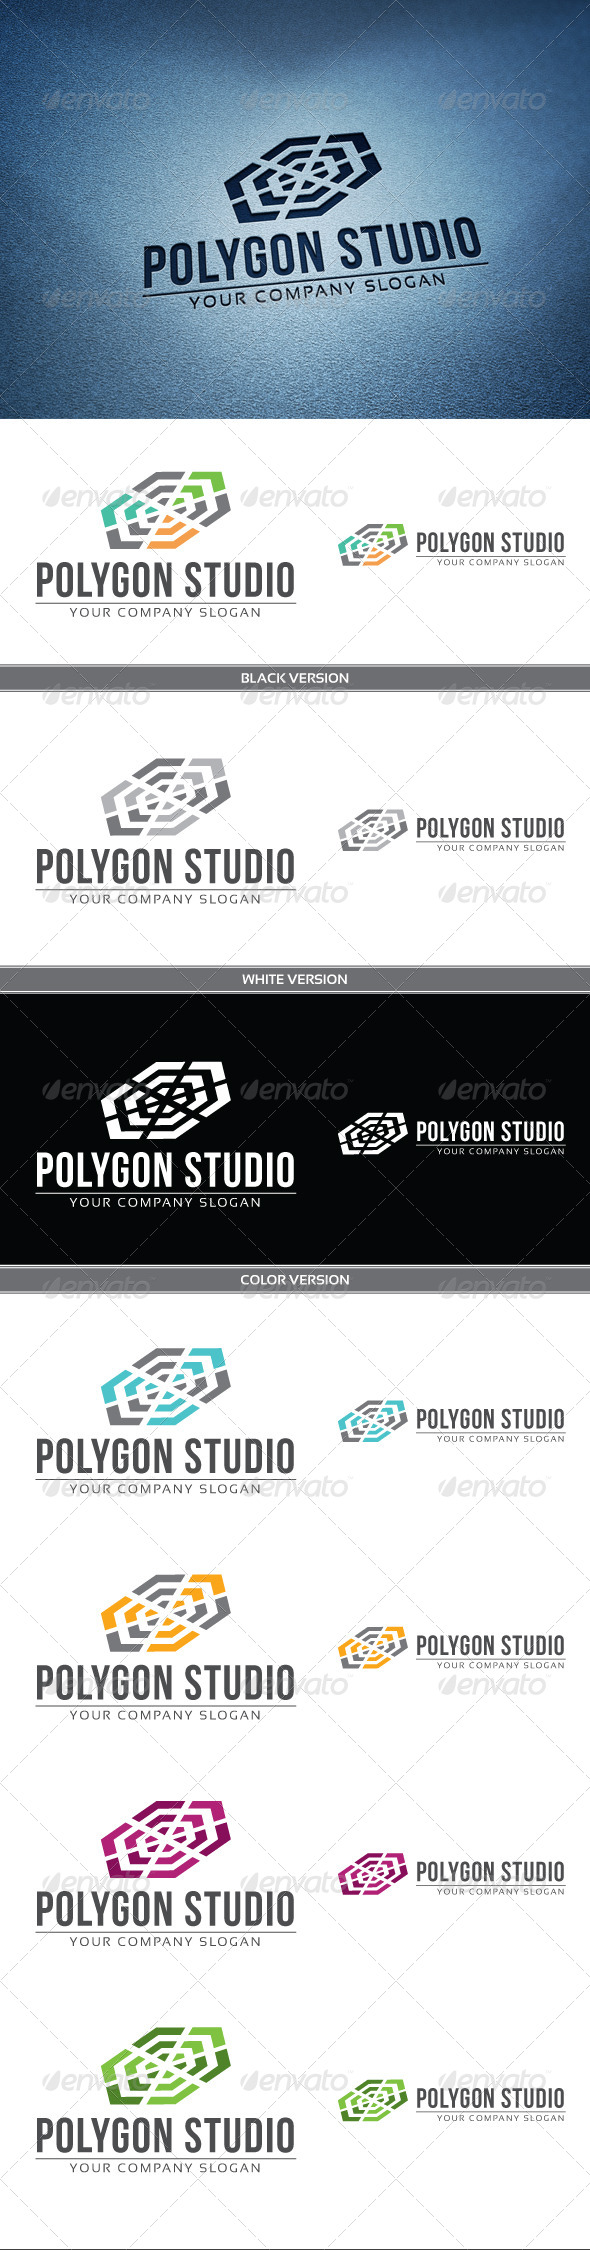 Polygon Studio Logo - Objects Logo Templates